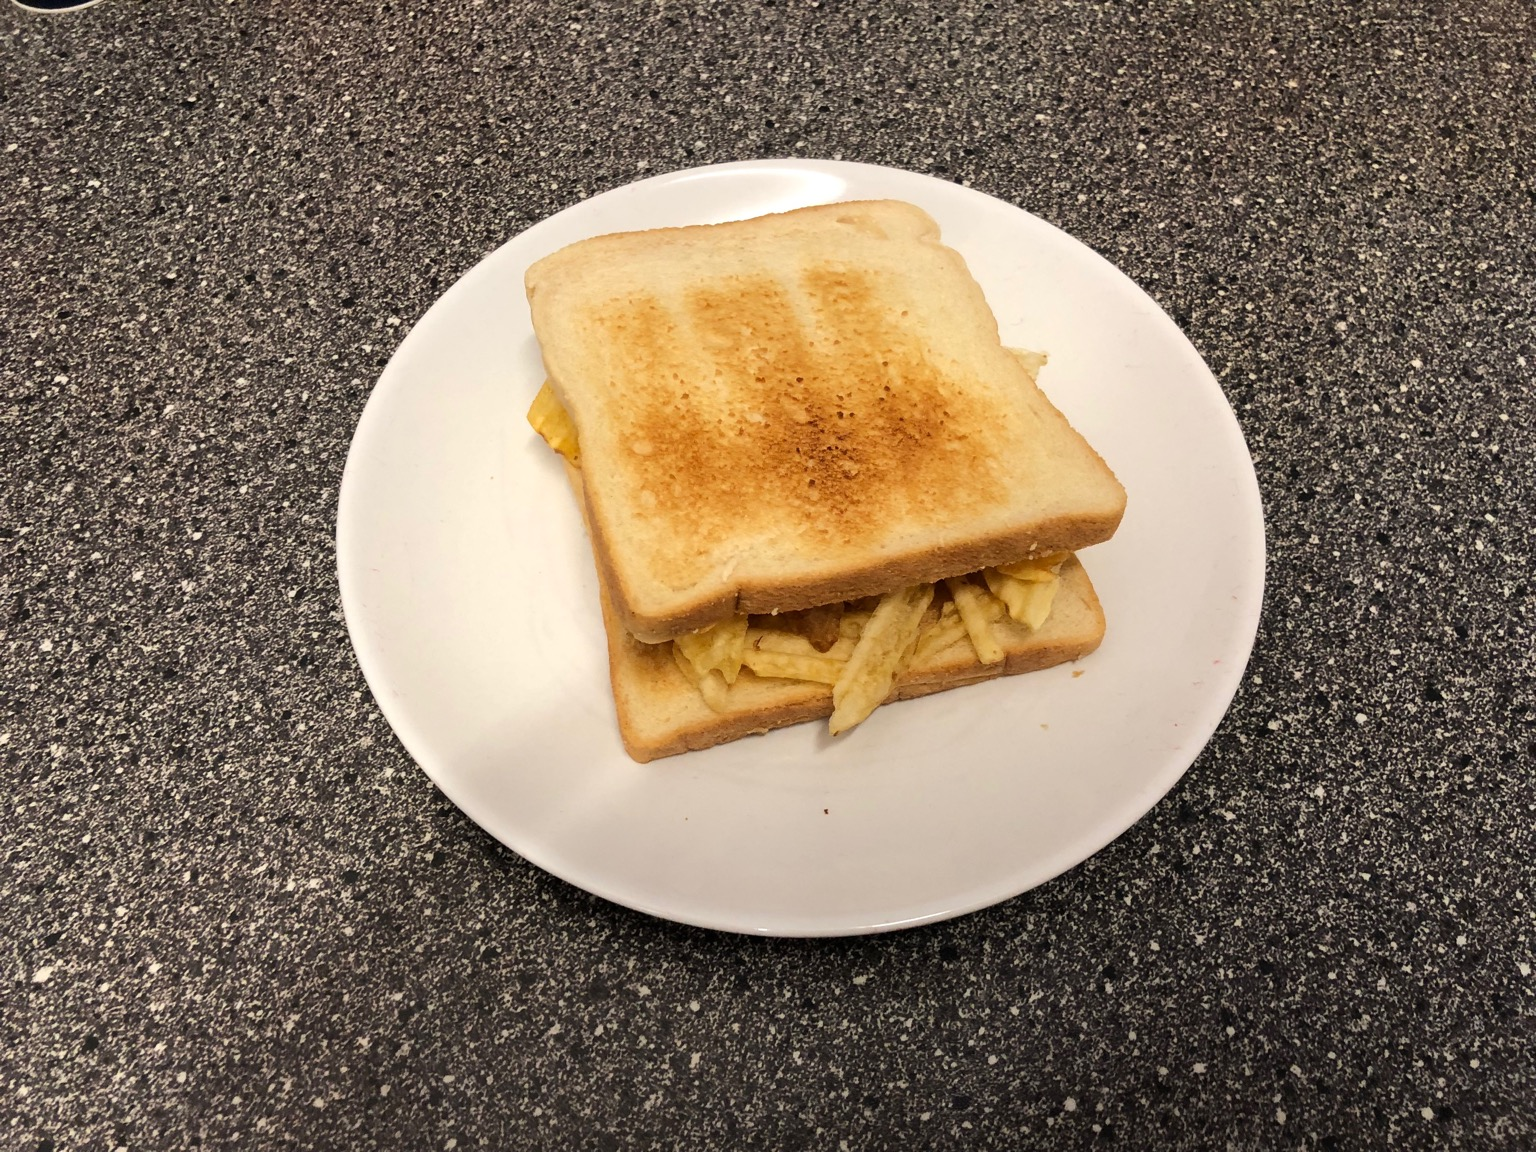 Crinkle-cut crisps between slices of white toast